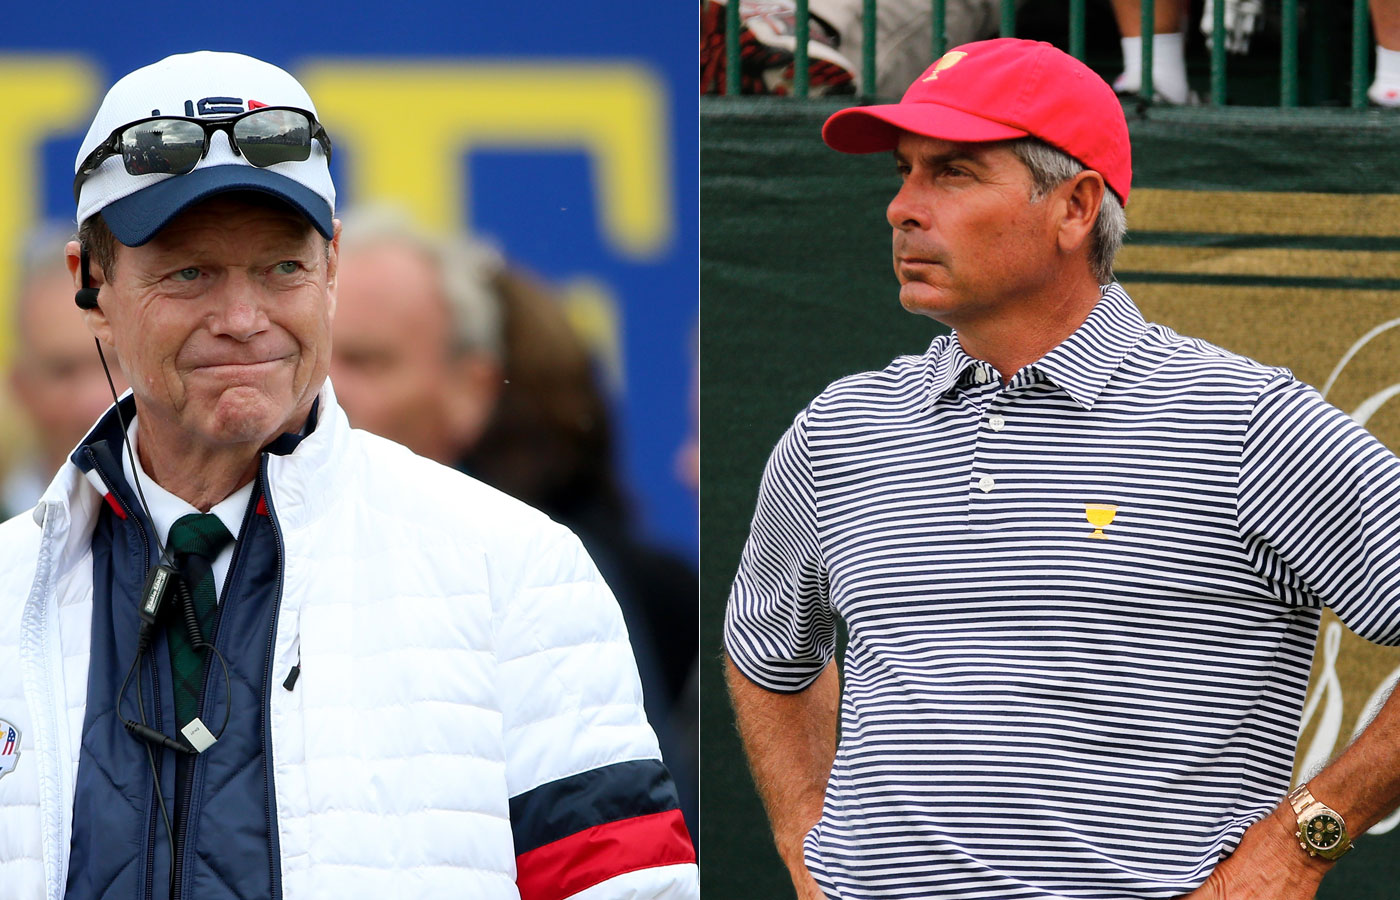 Fred Couples has been a popular candidate for Team USA's captain at the 2016 Ryder Cup after Tom Watson's captaincy failed to secure a victory in 2014.